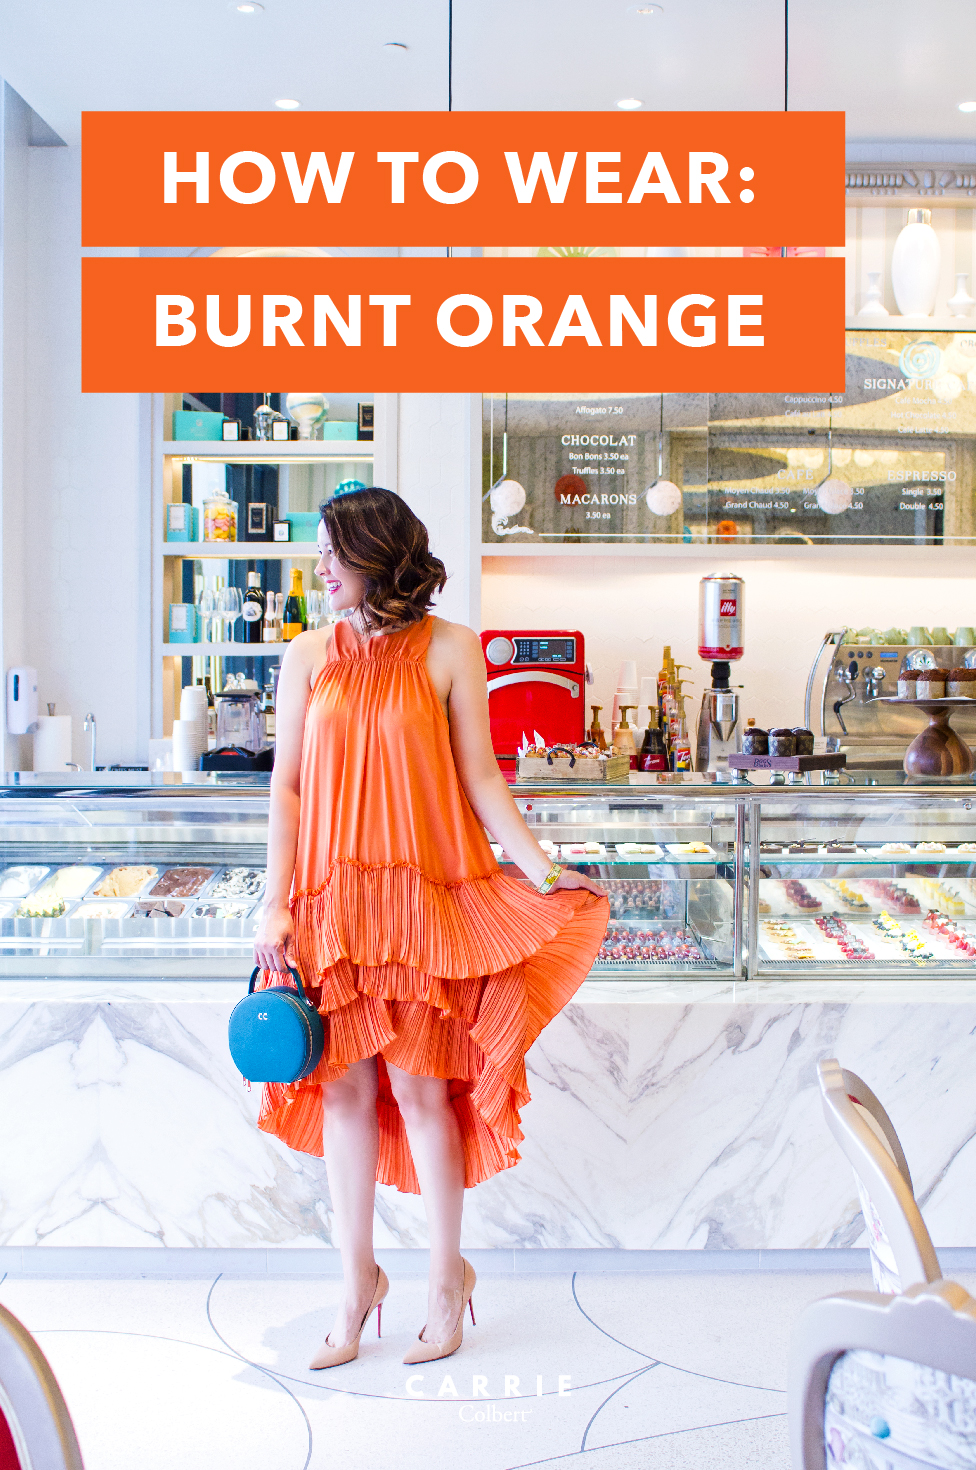 9 Creative Ideas For How To Wear Burnt Orange Carrie Colbert